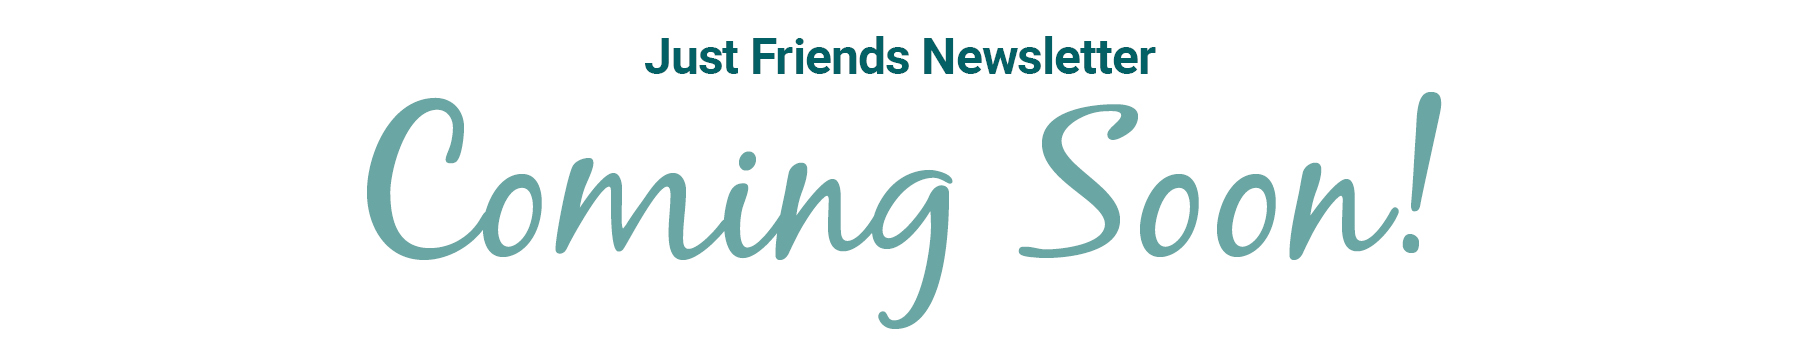 just-friends-newsletter-coming-soon-text